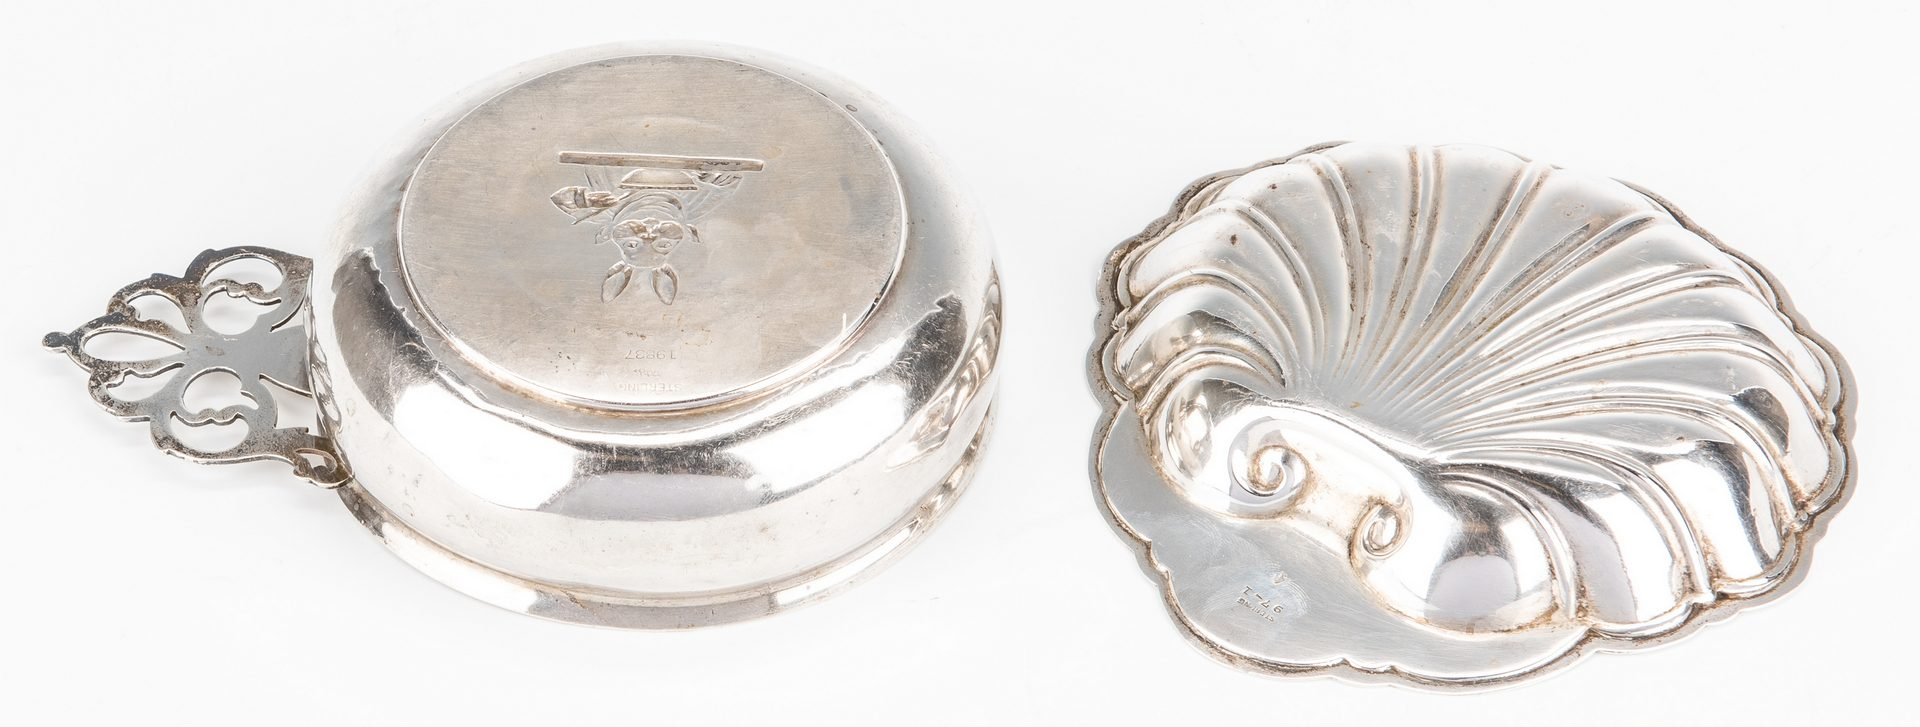 Lot 872: 5 Pcs Sterling: Jefferson bowl, baby items